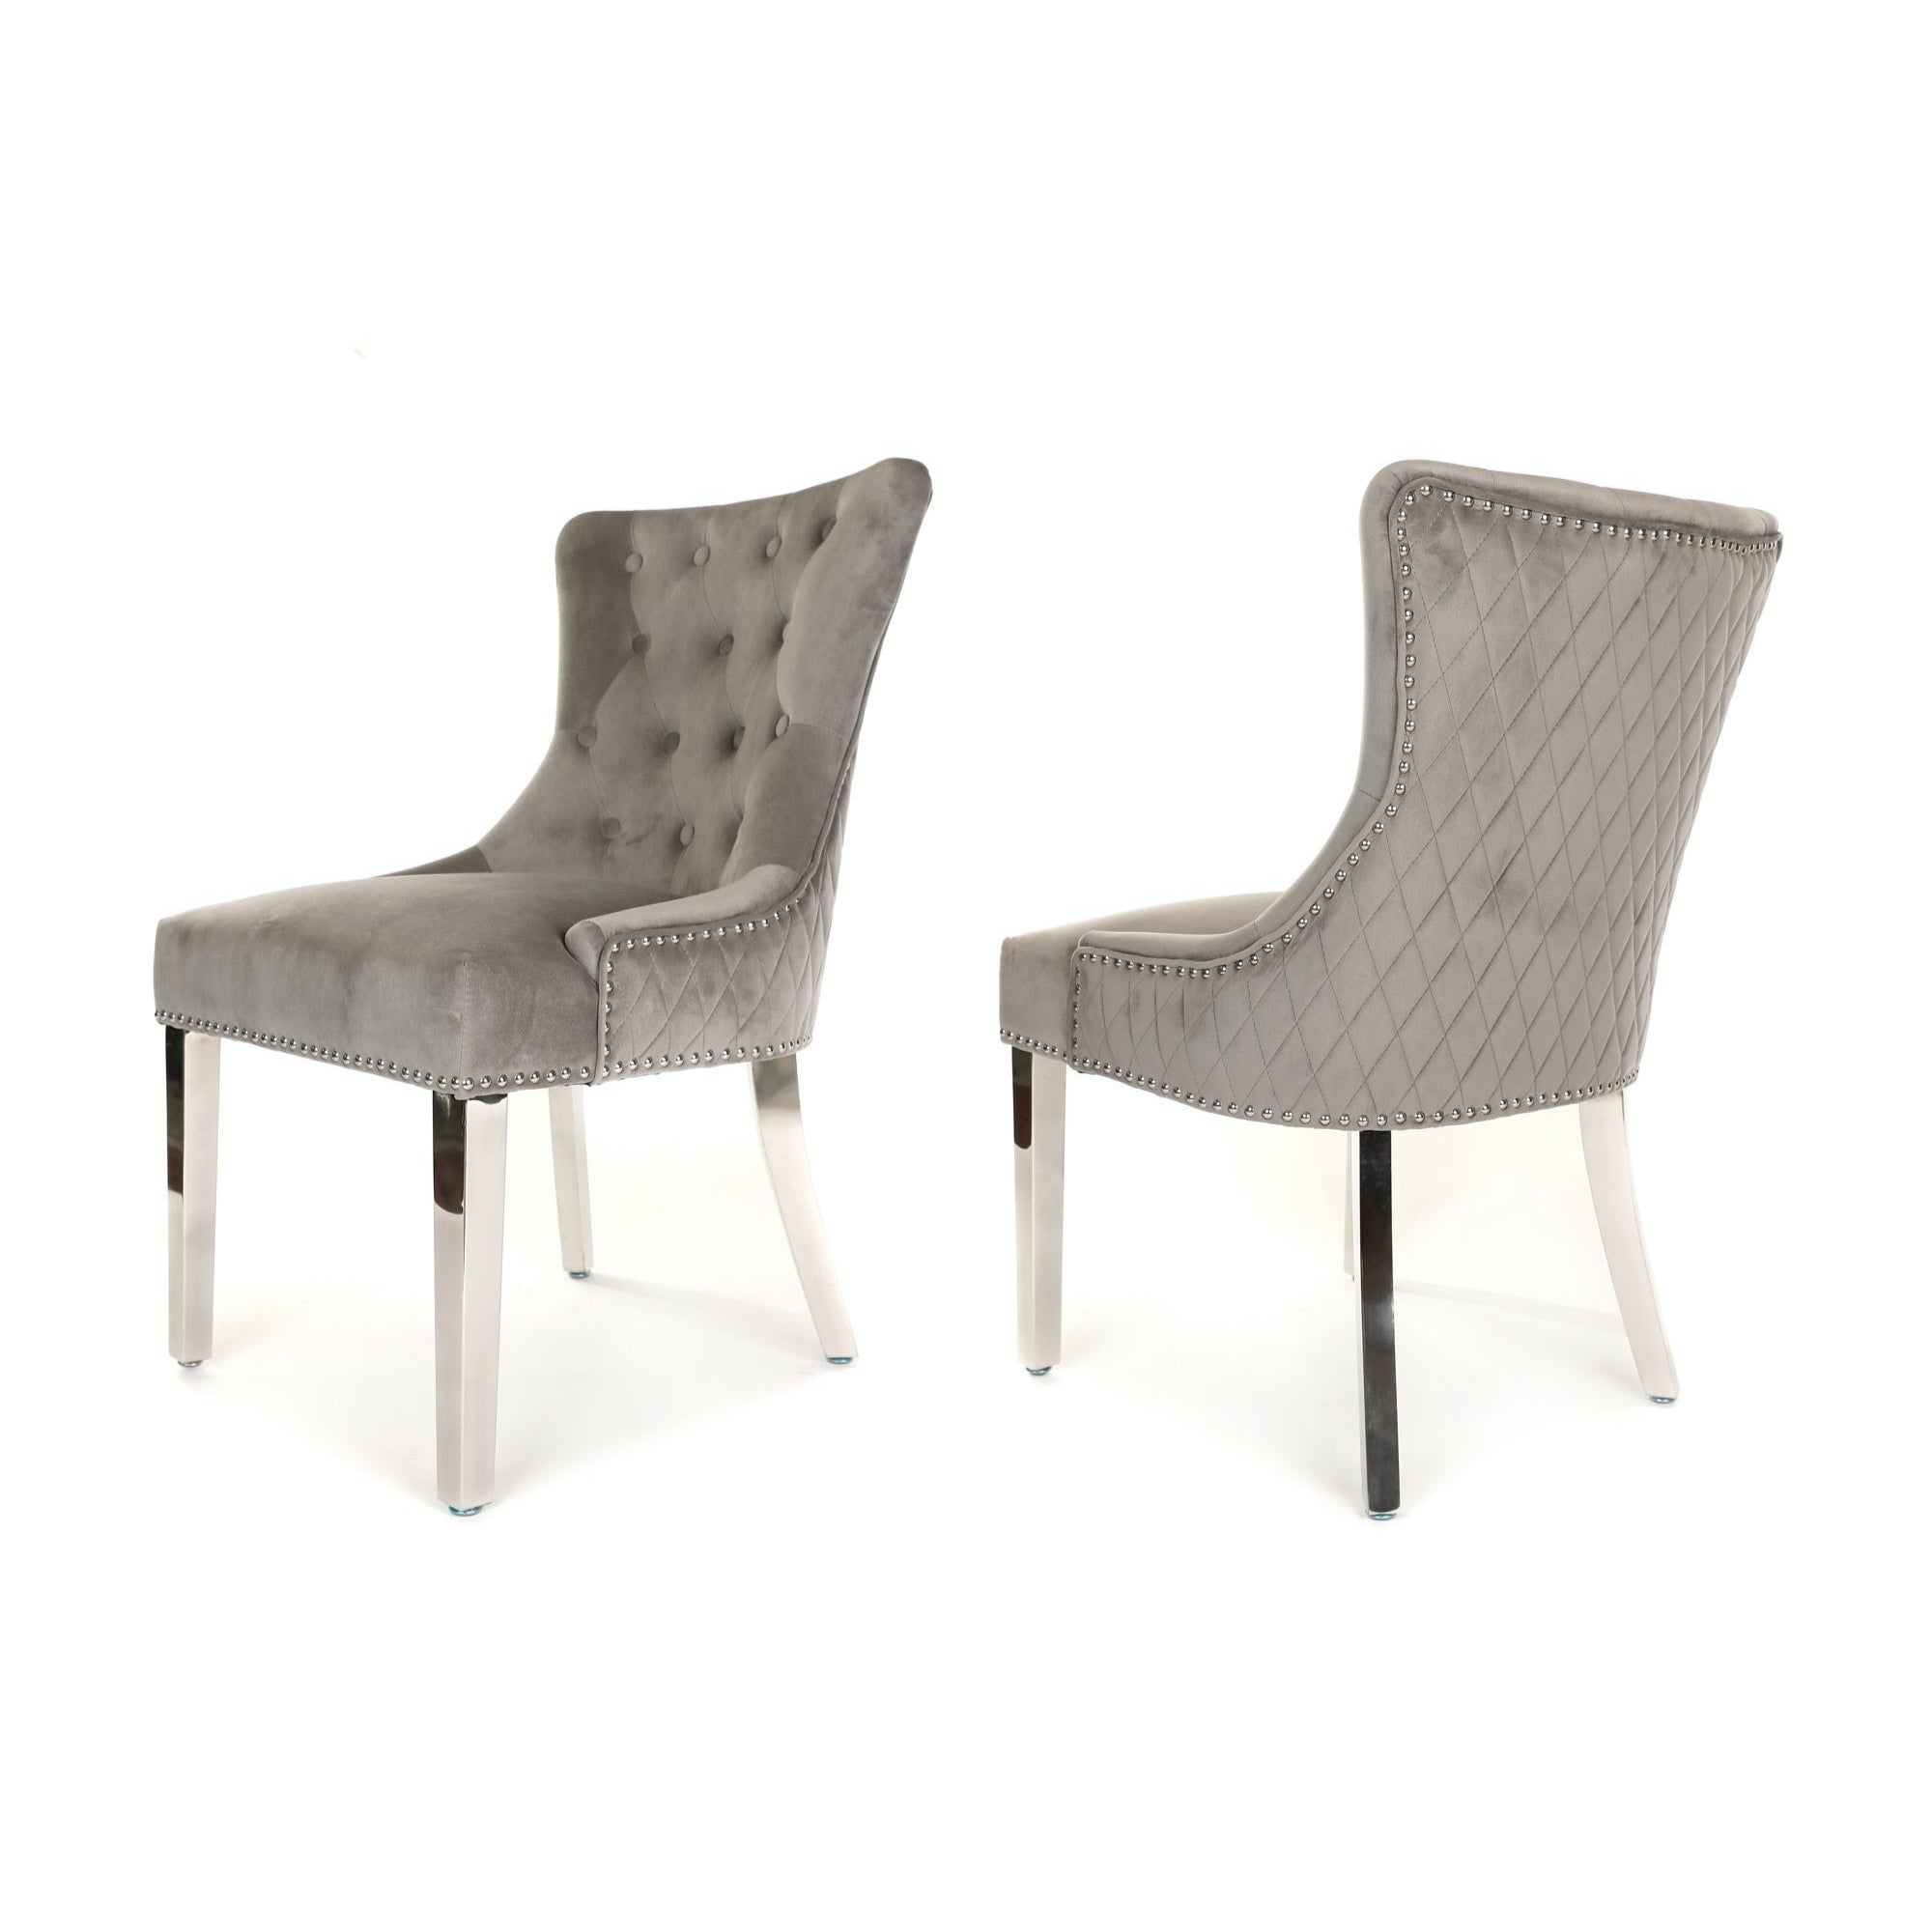 Simone Dining Chair upholstered in light grey velvet with stud detail, quilted back and metal legs